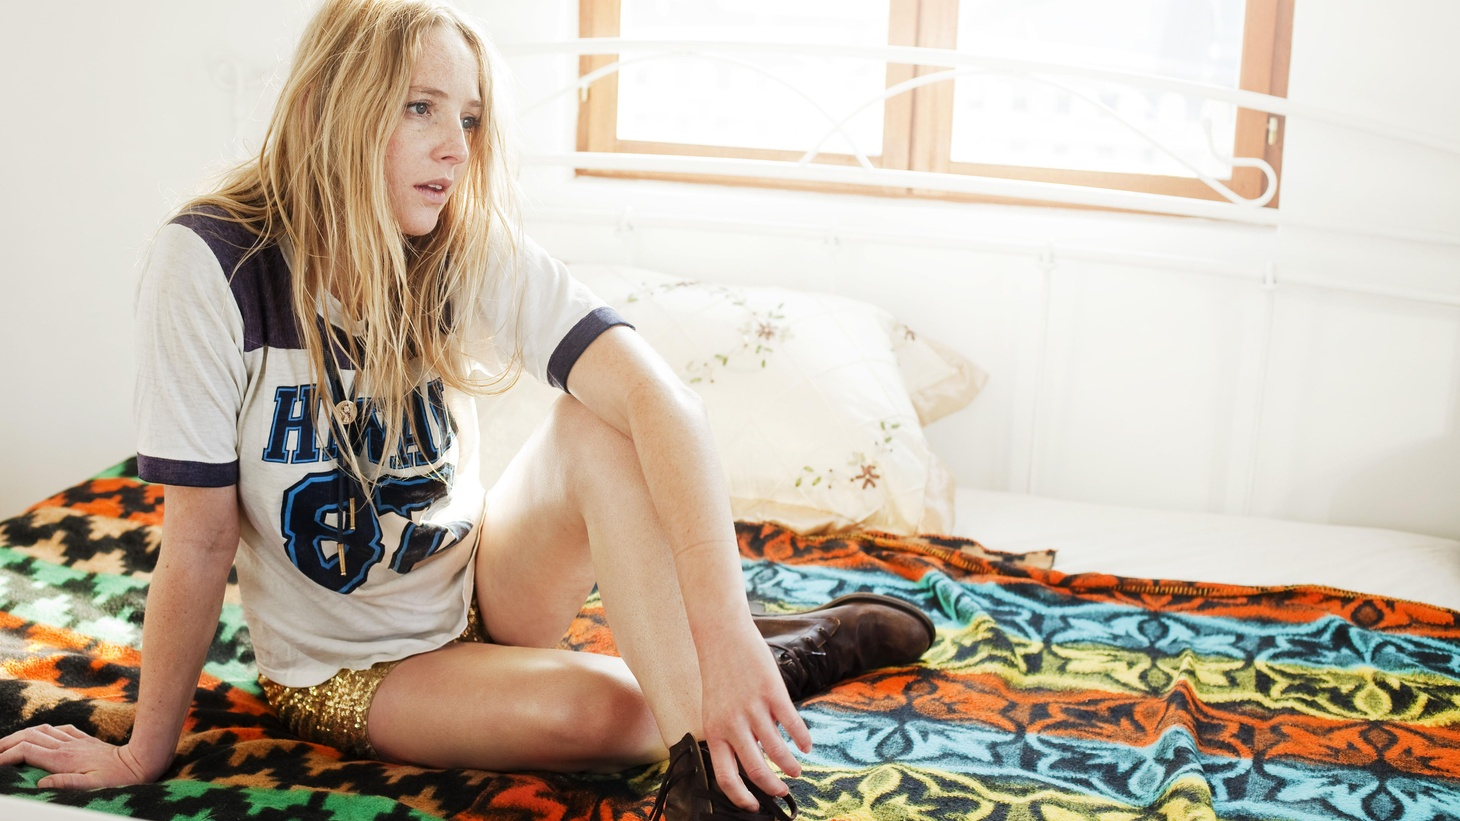 With her debut album, Catching a Tiger, singer/songwriter Elisabeth Maurus, aka Lissie, has quickly made a name for herself as an artist to watch.